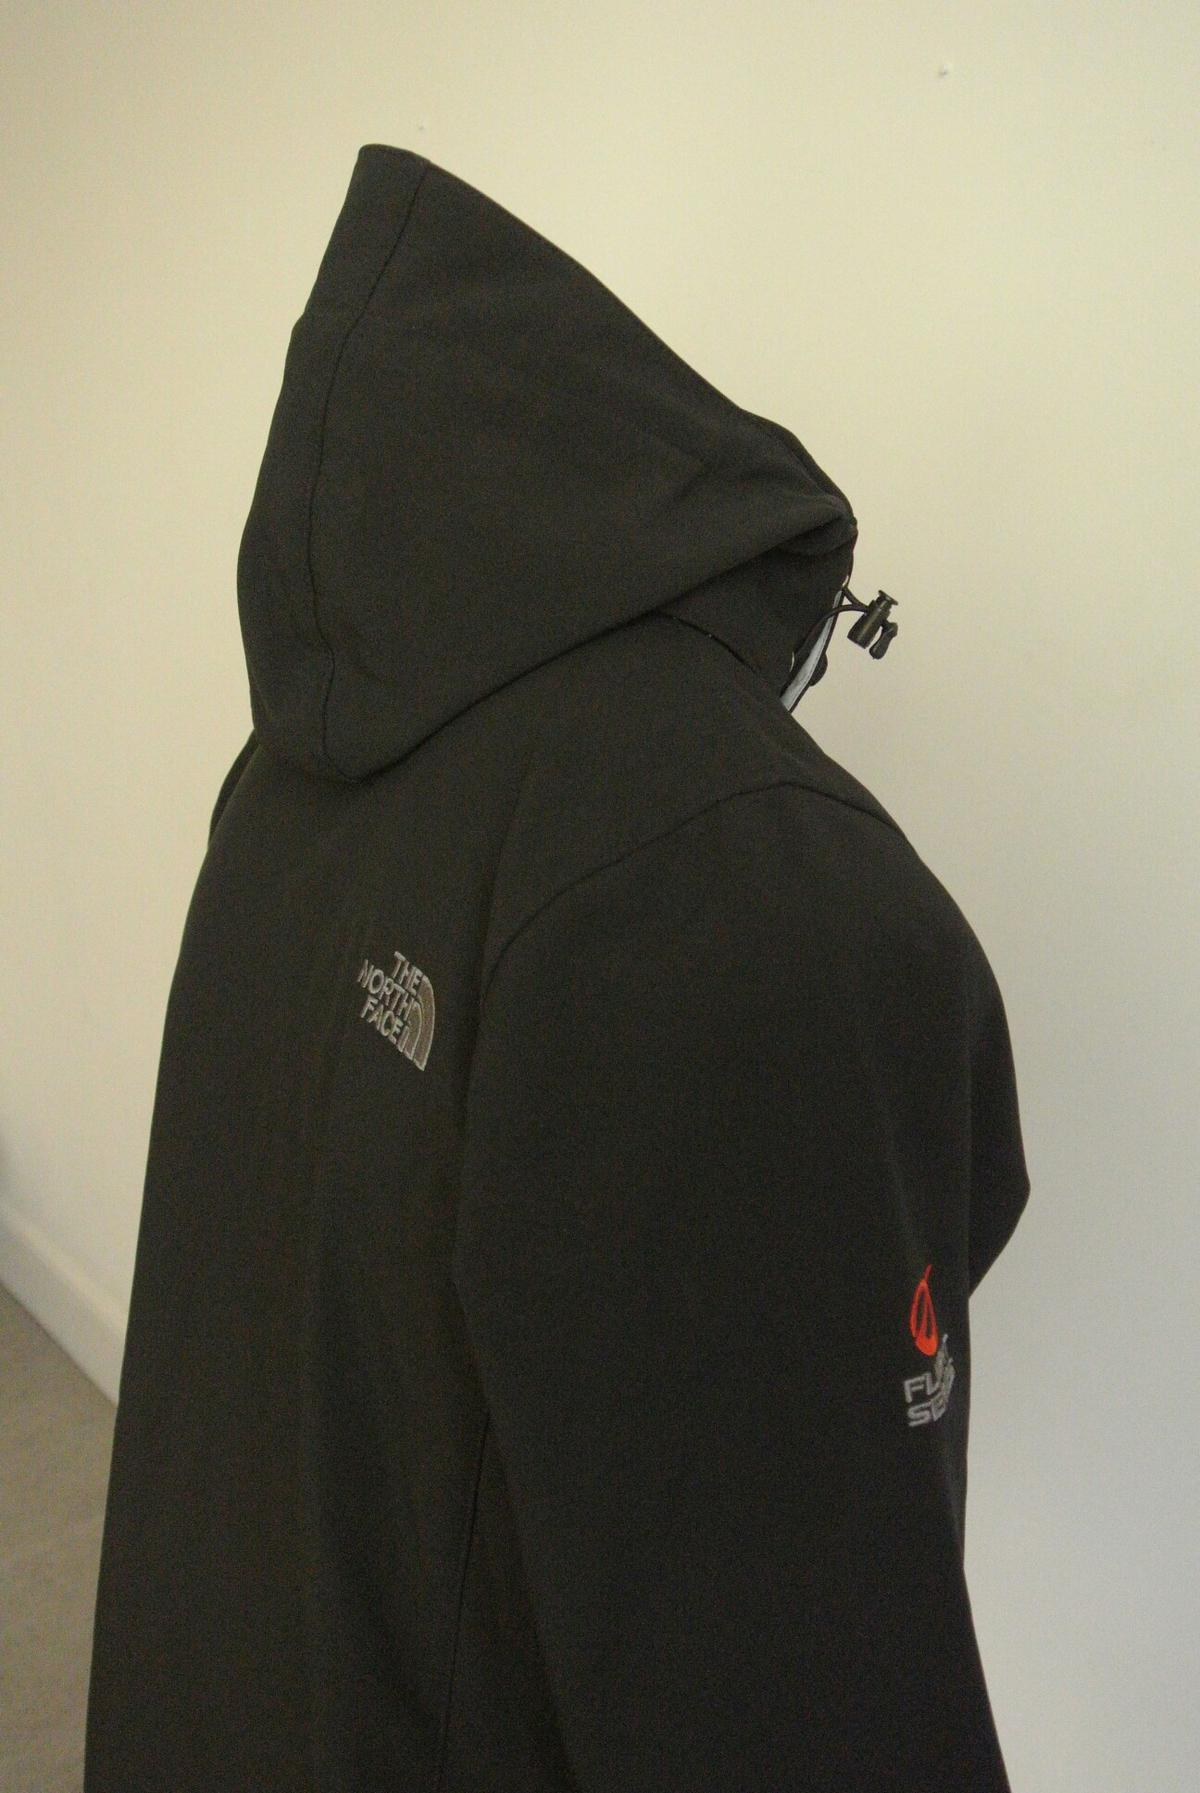 fabd67253 THE NORTH FACE flight series wind stopper in E1 London for £40.00 ...